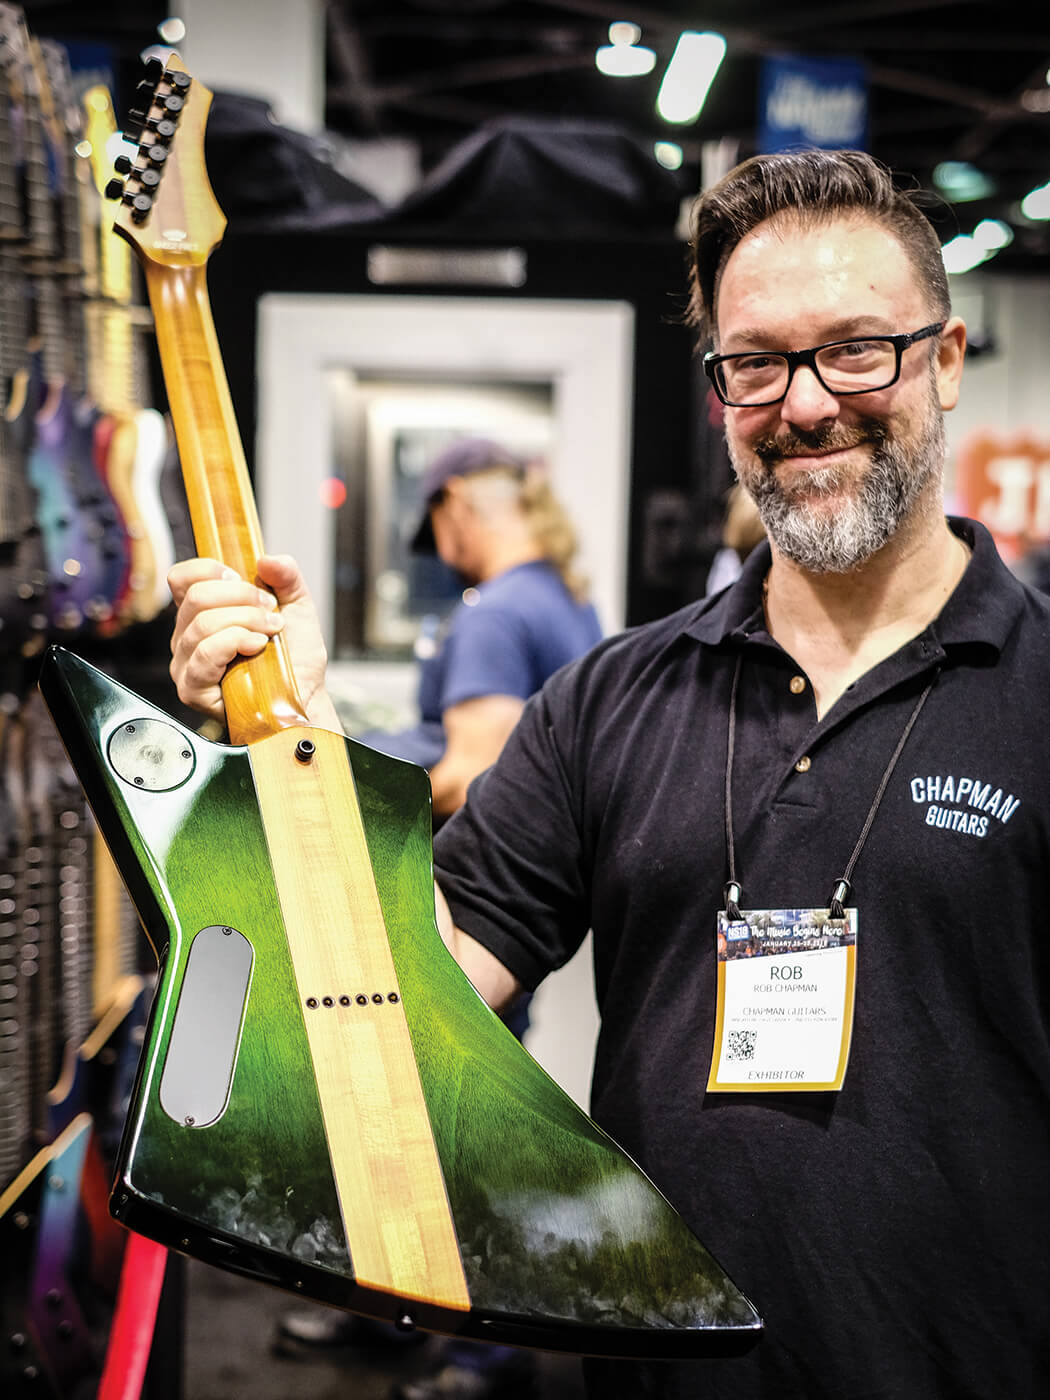 rob chapman guitars